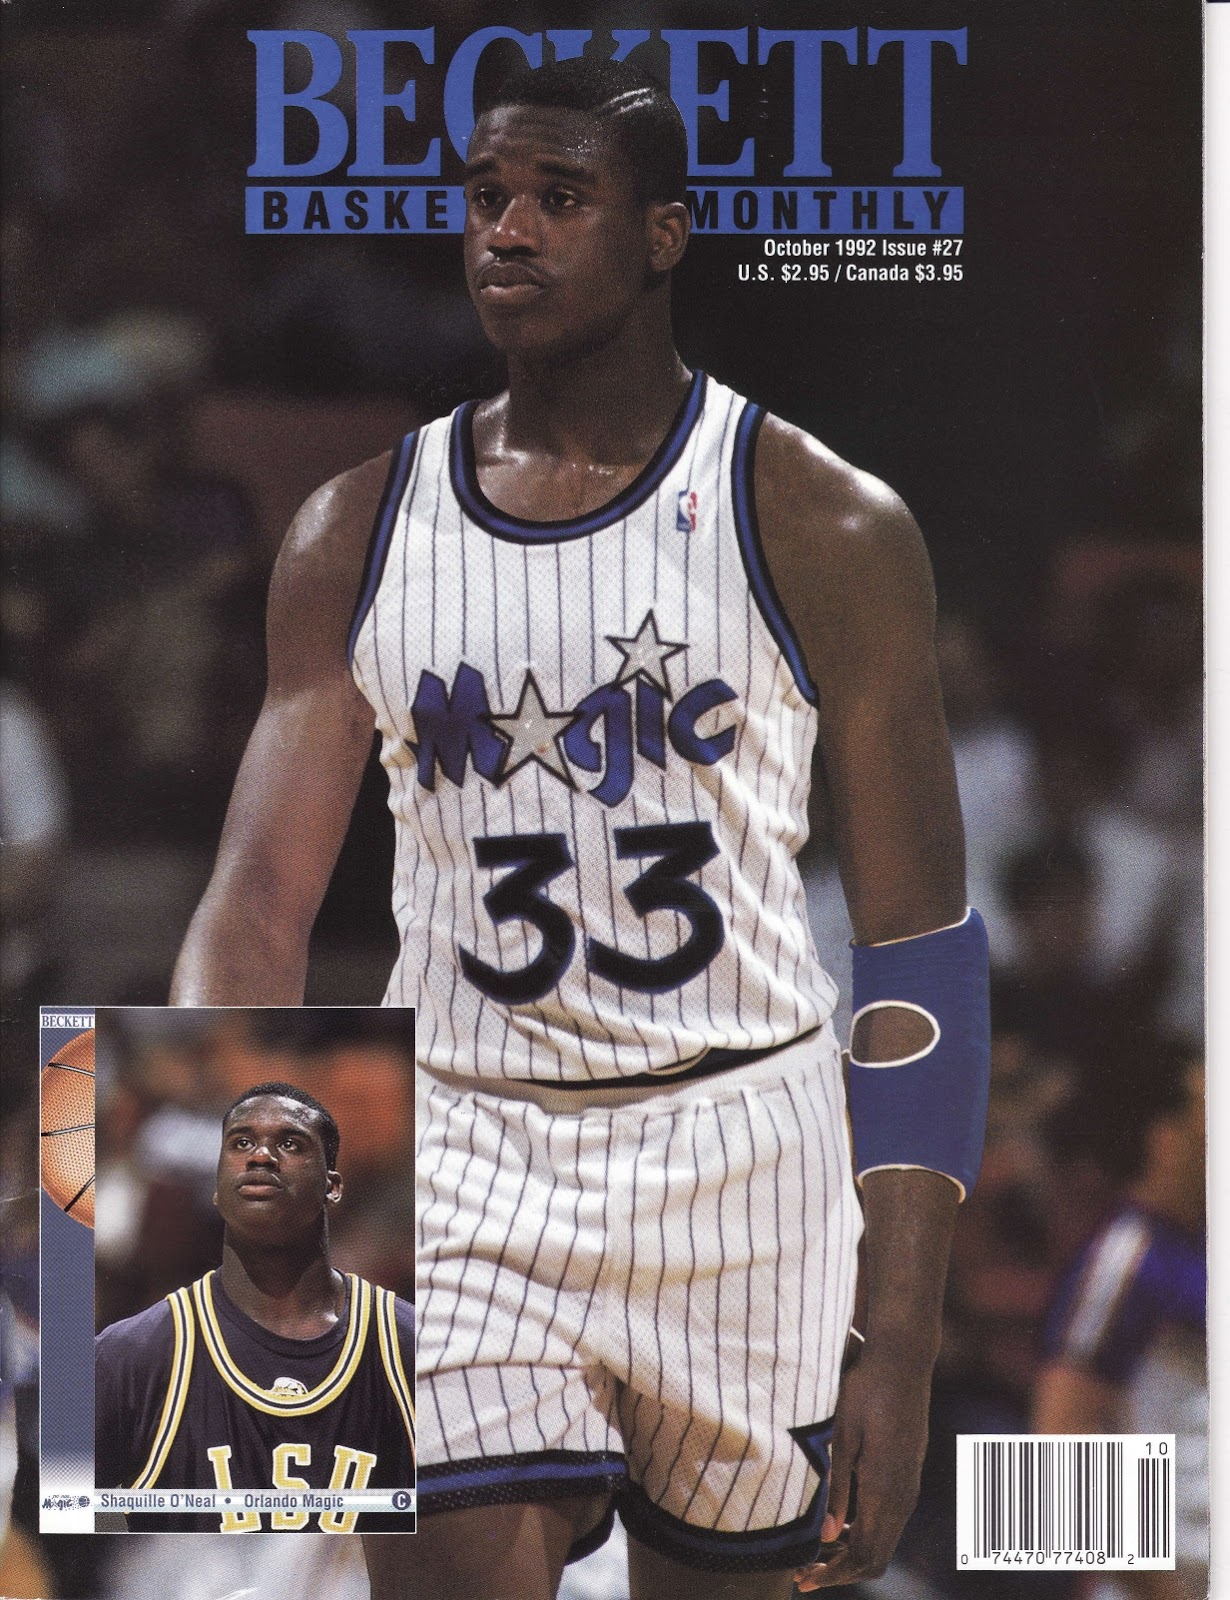 Shaq pre-draft photo from Beckett Basketball Monthly